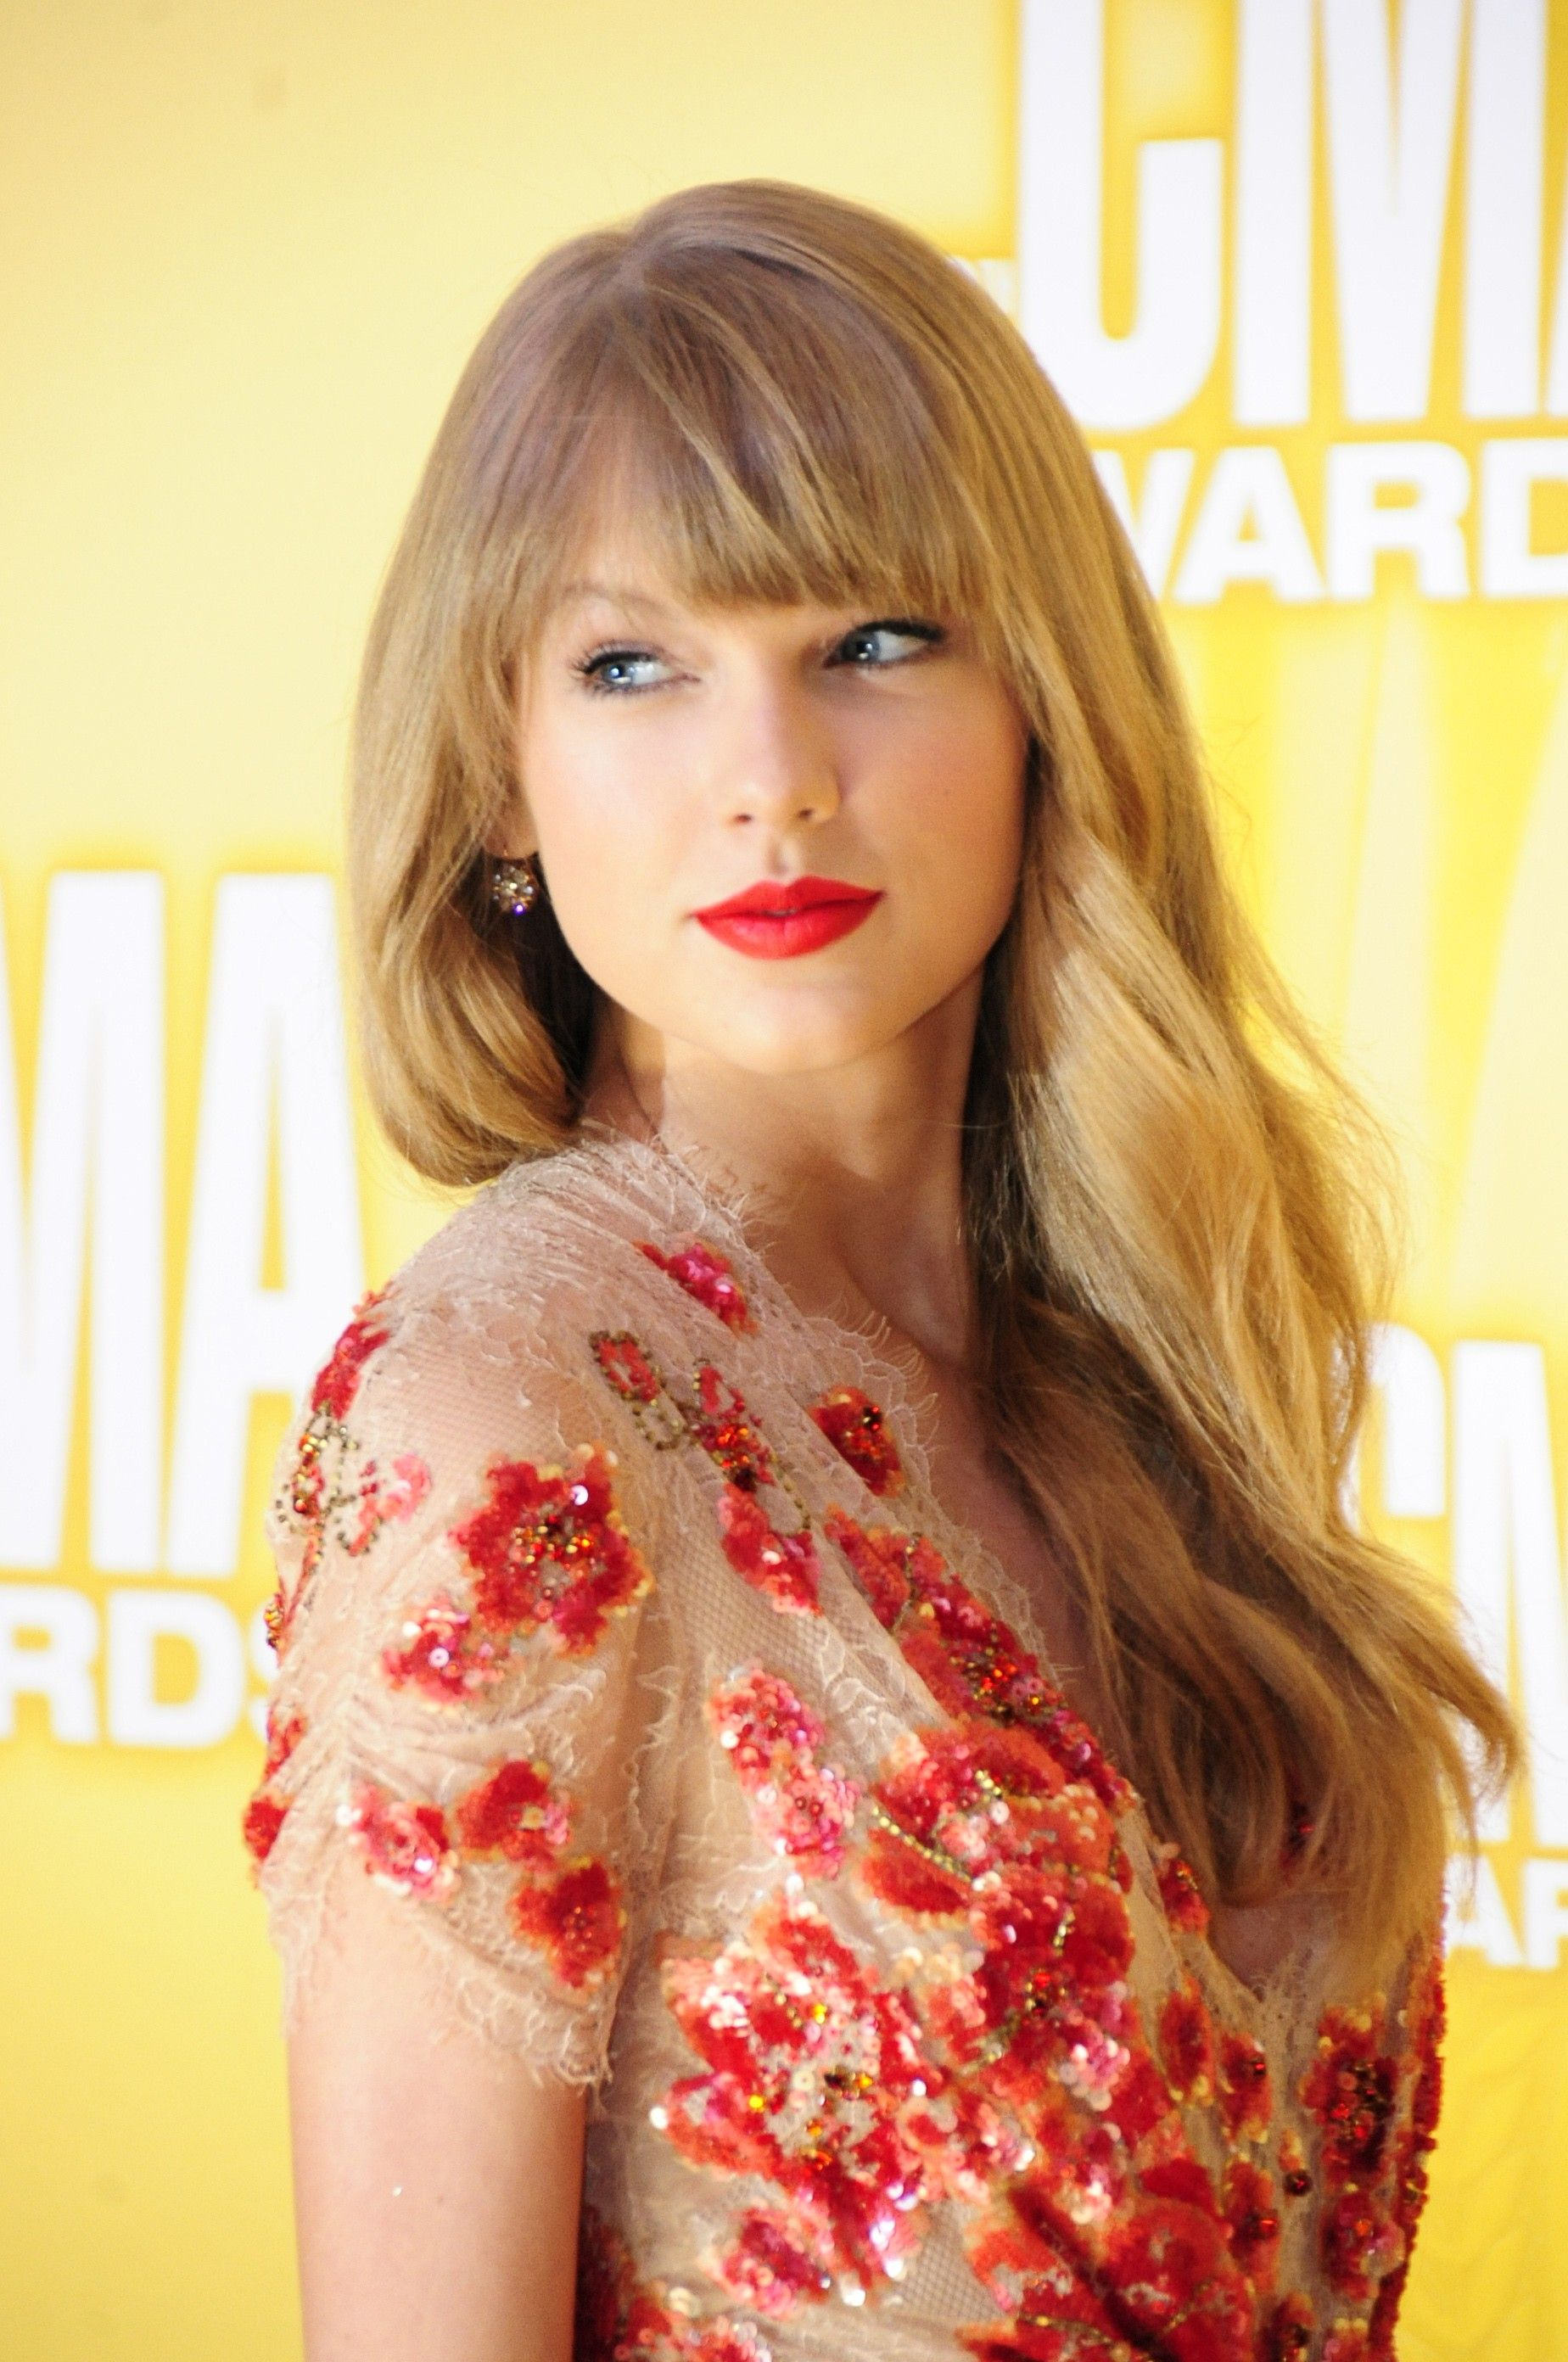 taylor swift hd wallpaper from gallsource | taylor swift